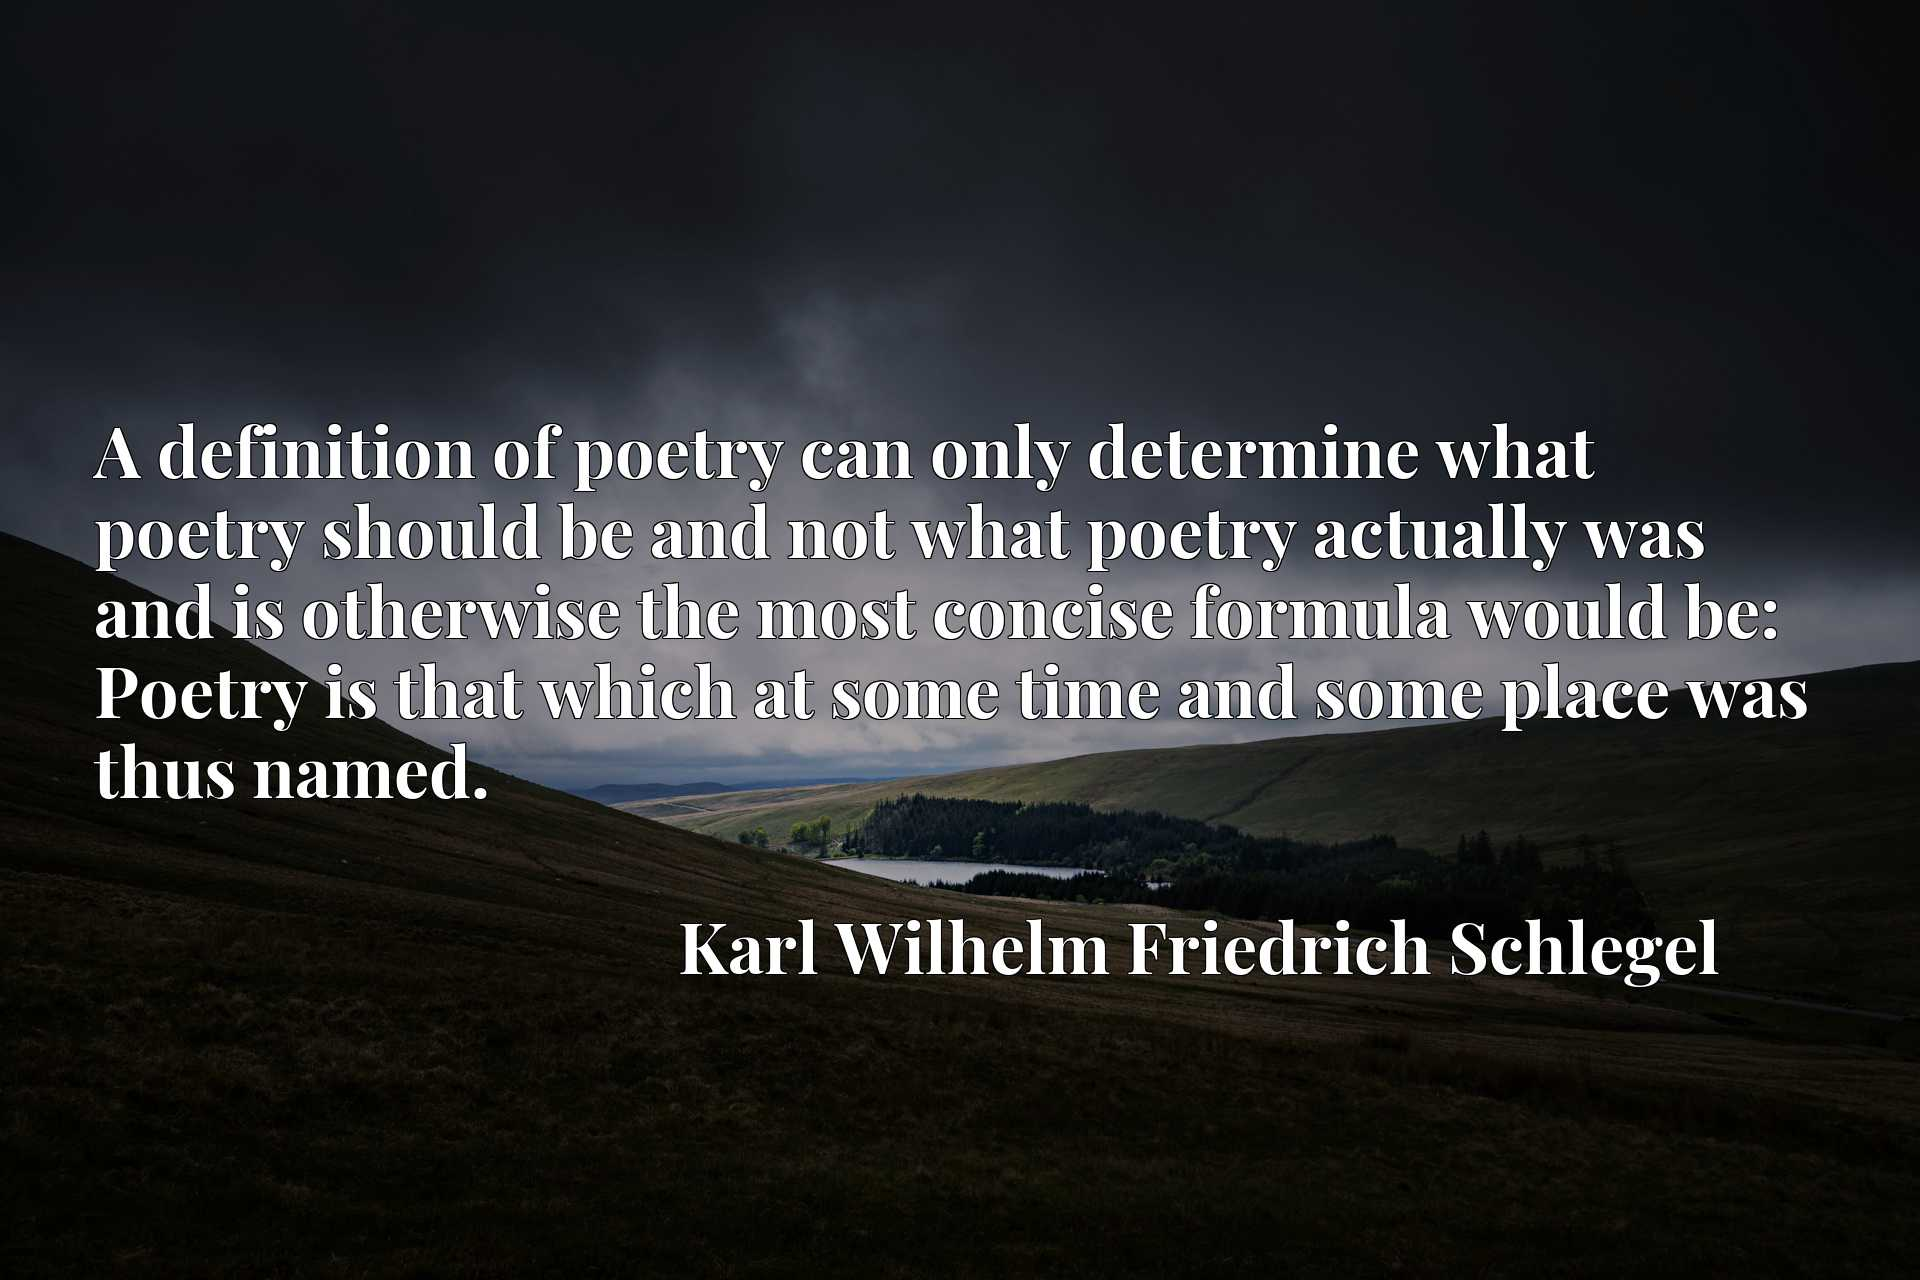 A definition of poetry can only determine what poetry should be and not what poetry actually was and is otherwise the most concise formula would be: Poetry is that which at some time and some place was thus named.